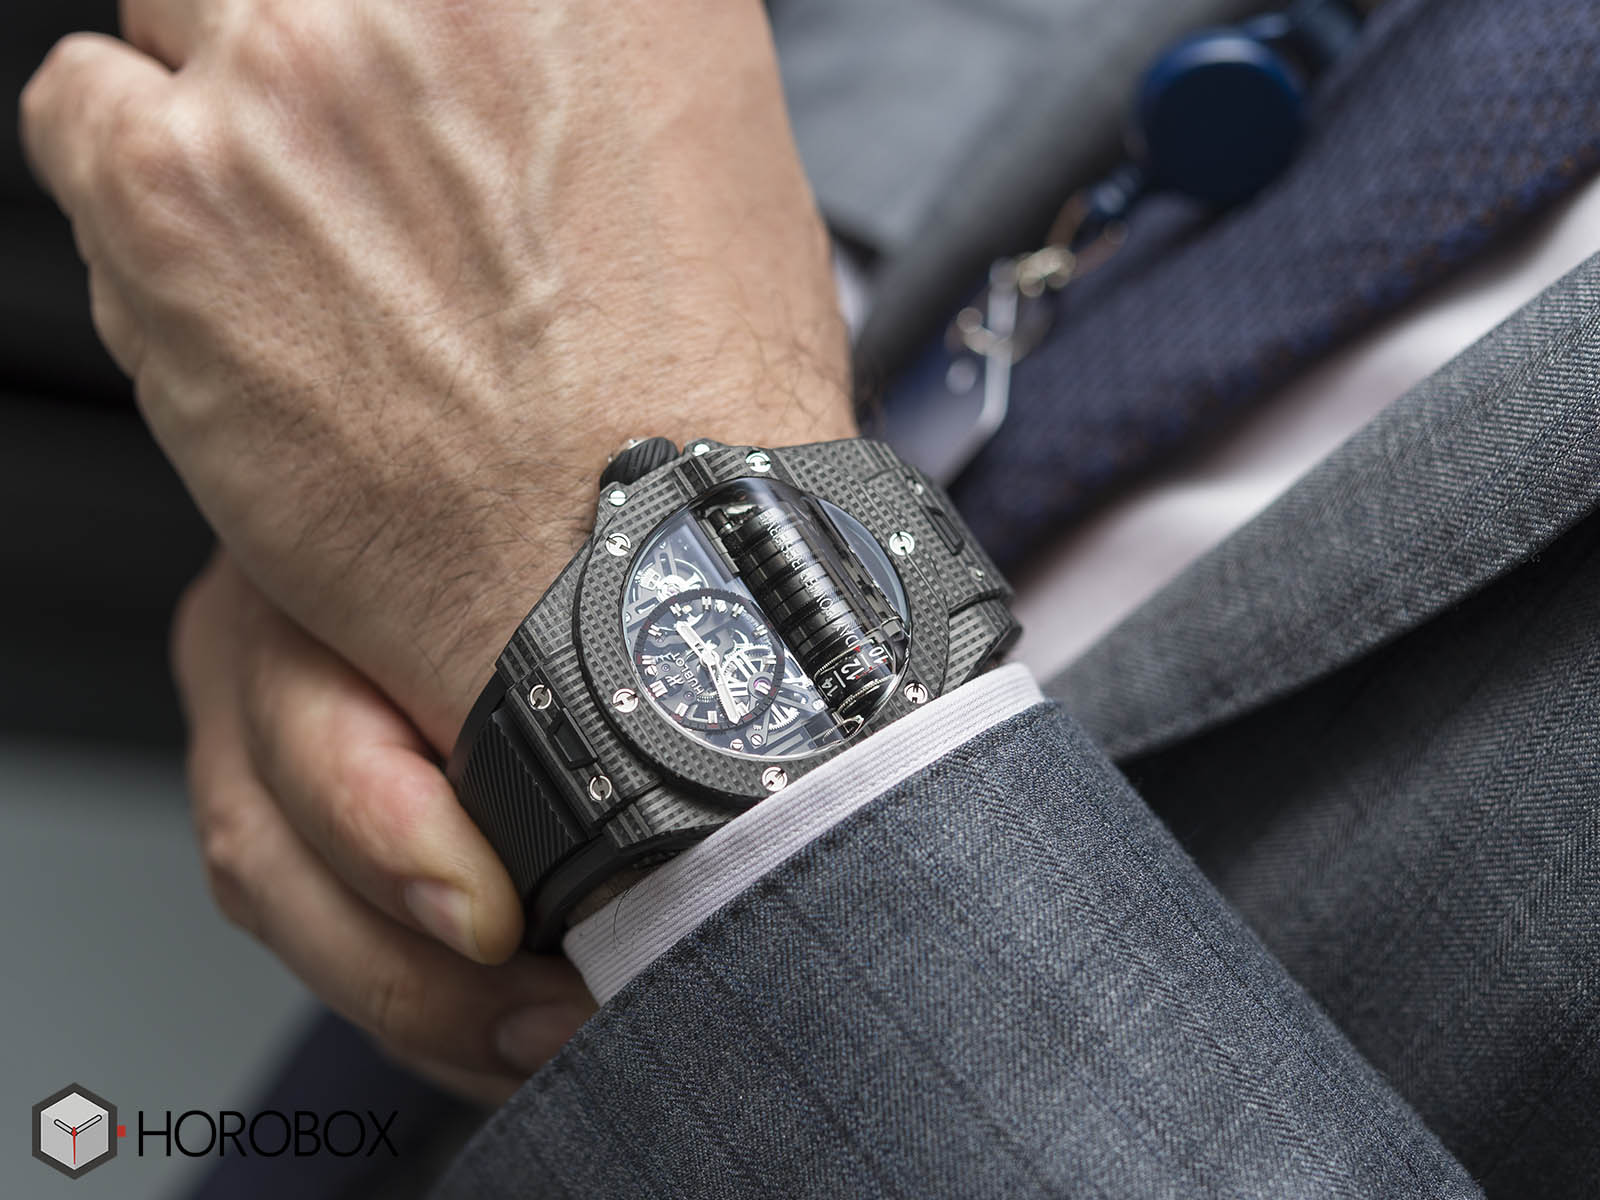 911-qd-0123-rx-hublot-mp-11-power-reserve-14-days-12.jpg